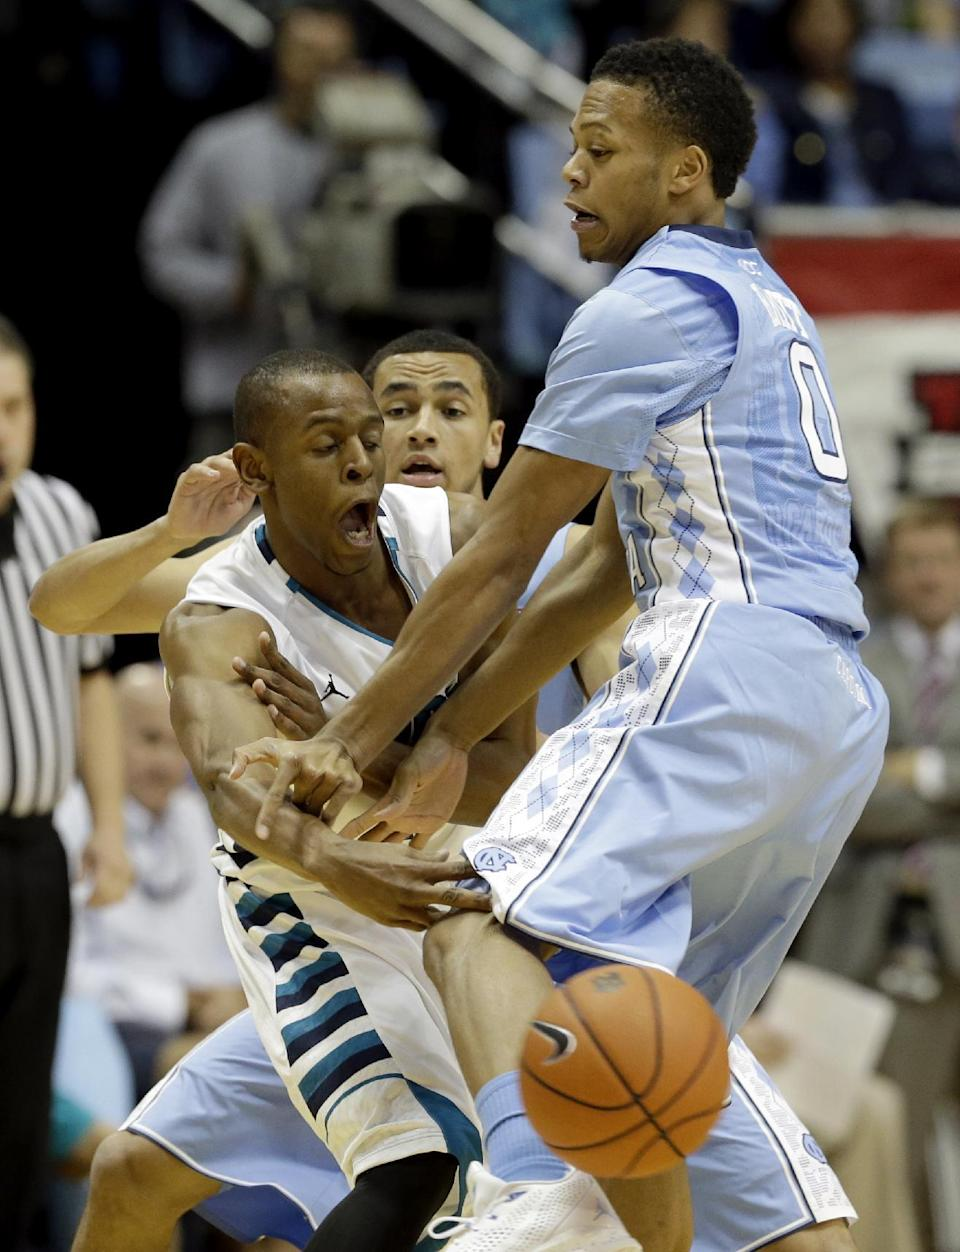 North Carolina's Nate Britt (0) and Marcus Paige, rear, guard UNC Wilmington's Freddie Jackson during the first half of an NCAA college basketball game in Chapel Hill, N.C., Tuesday, Dec. 31, 2013. (AP Photo/Gerry Broome)